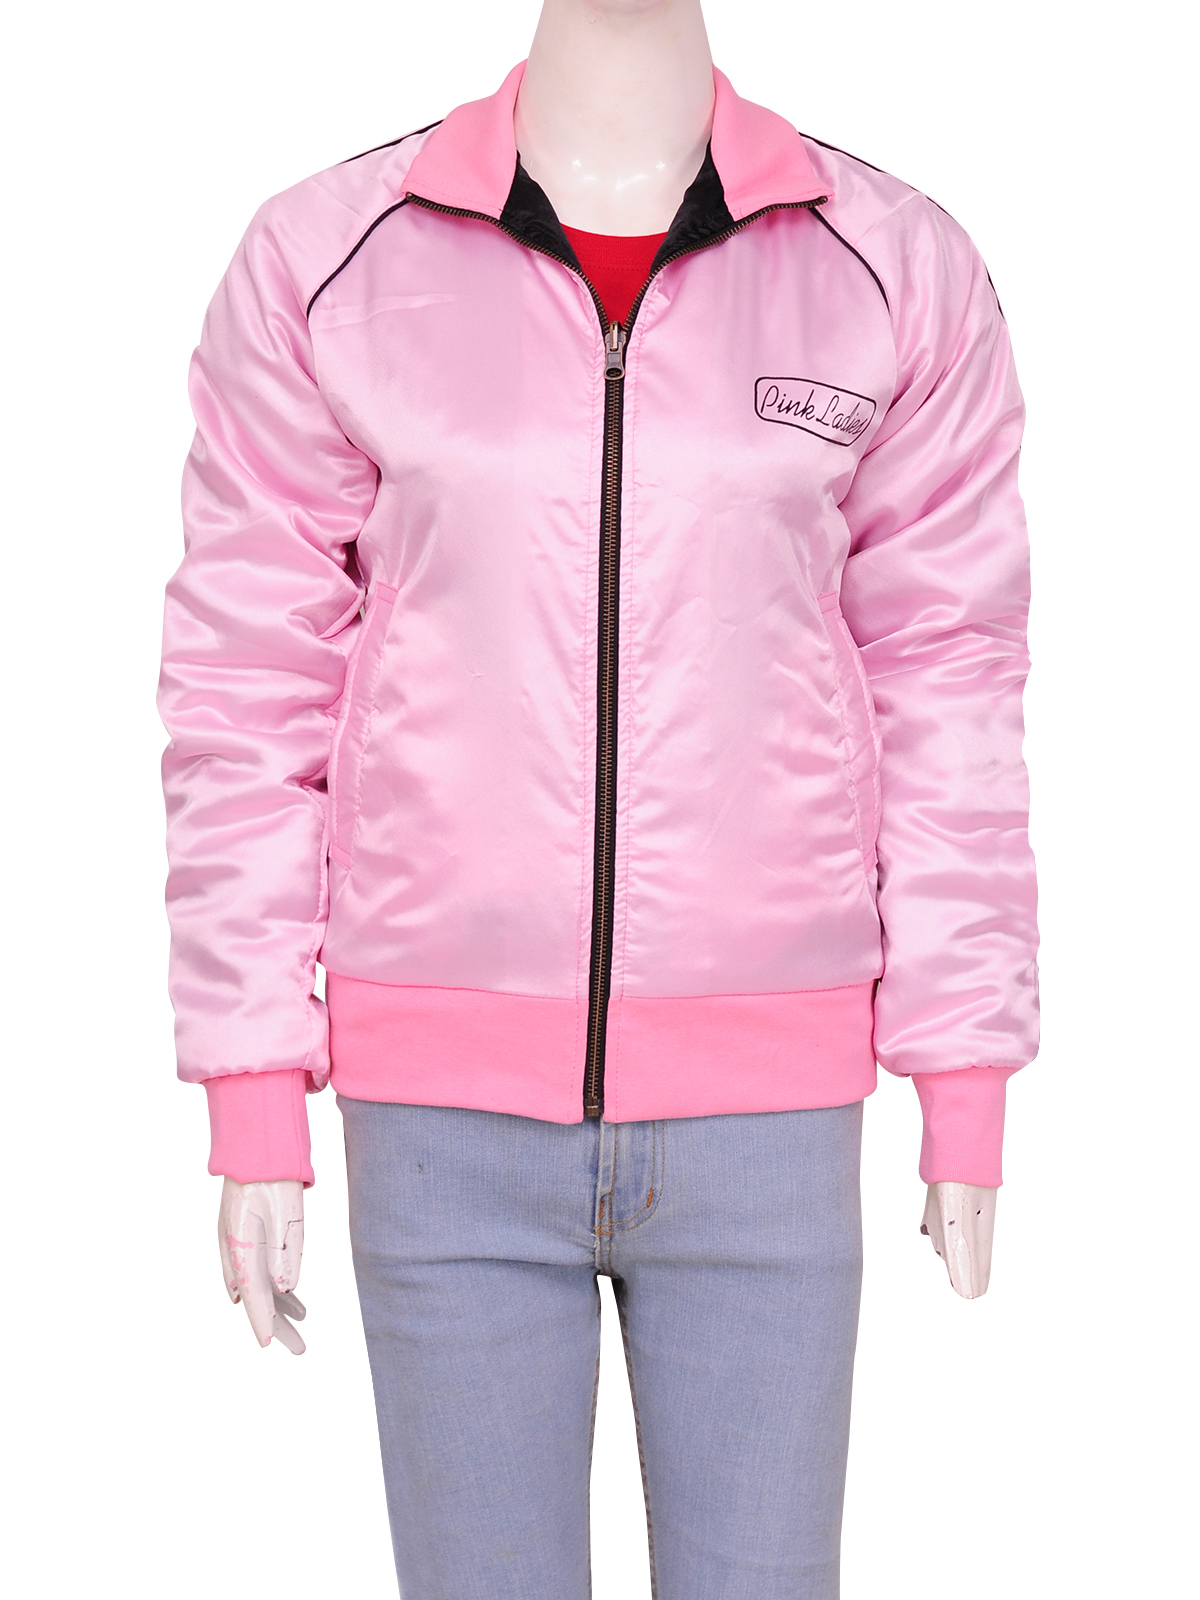 Michelle-Pfeiffer-Reversible-Pink-Jacket-F-C